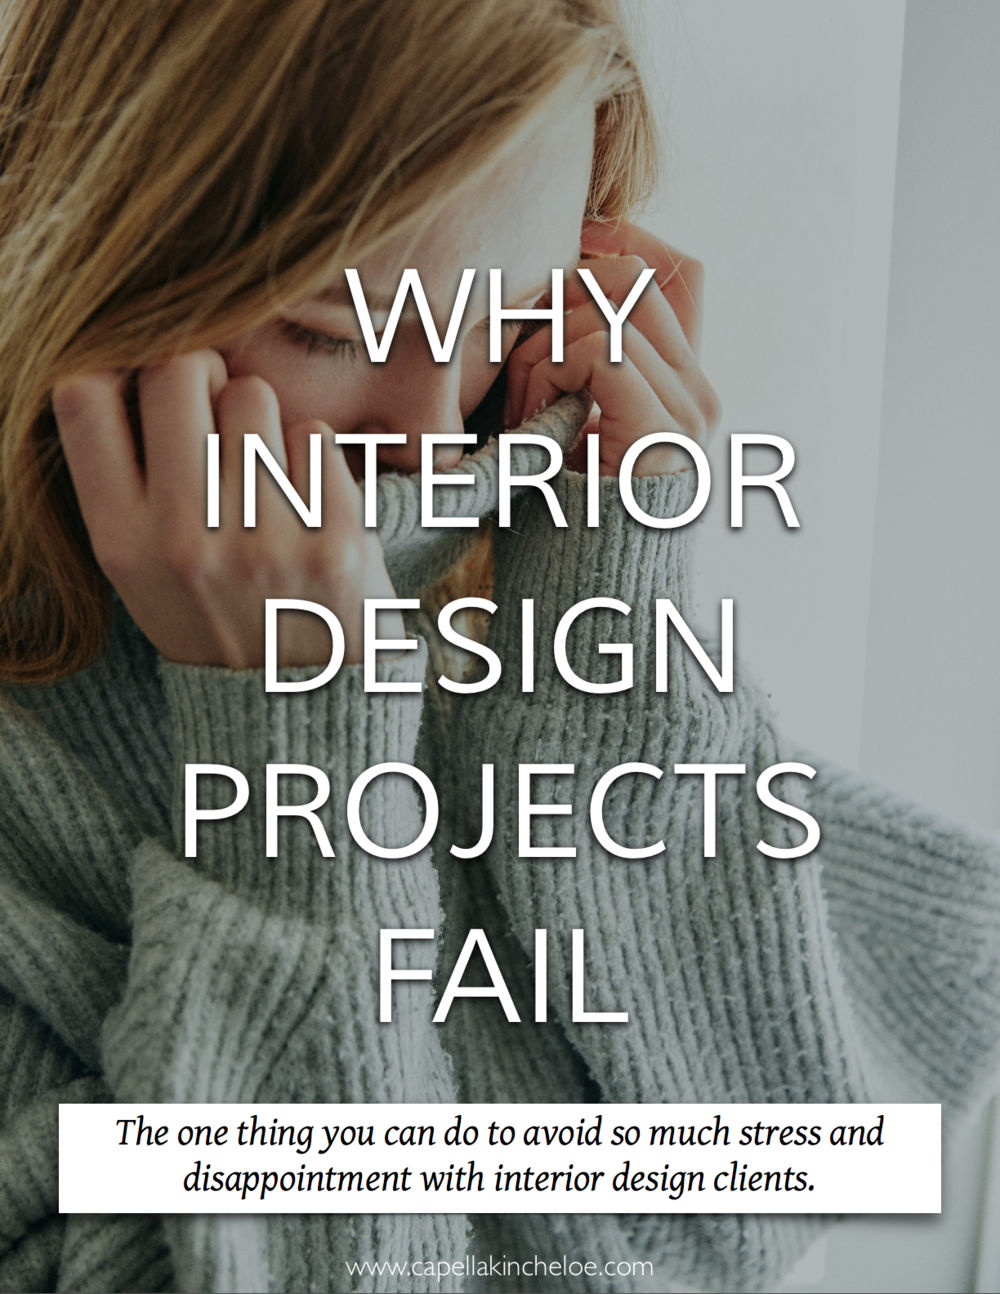 Why interior design projects fail and what you can do about it.  #interiordesignbusiness #cktradesecrets #interiordesignclients #expectations